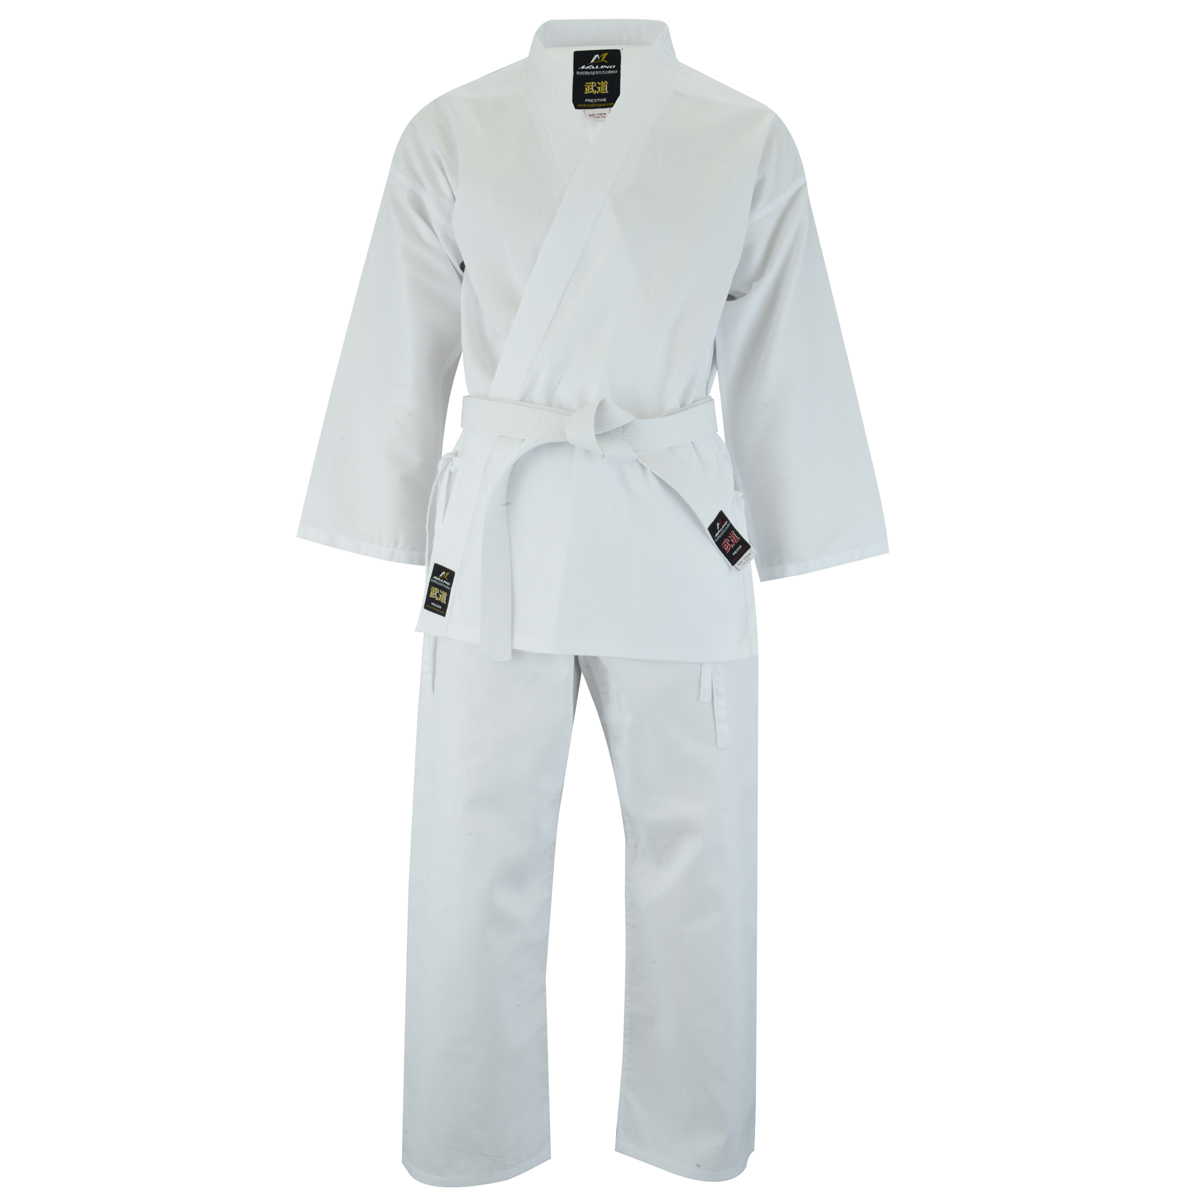 Malino Adult Lightweight Karate Suit - 6oz